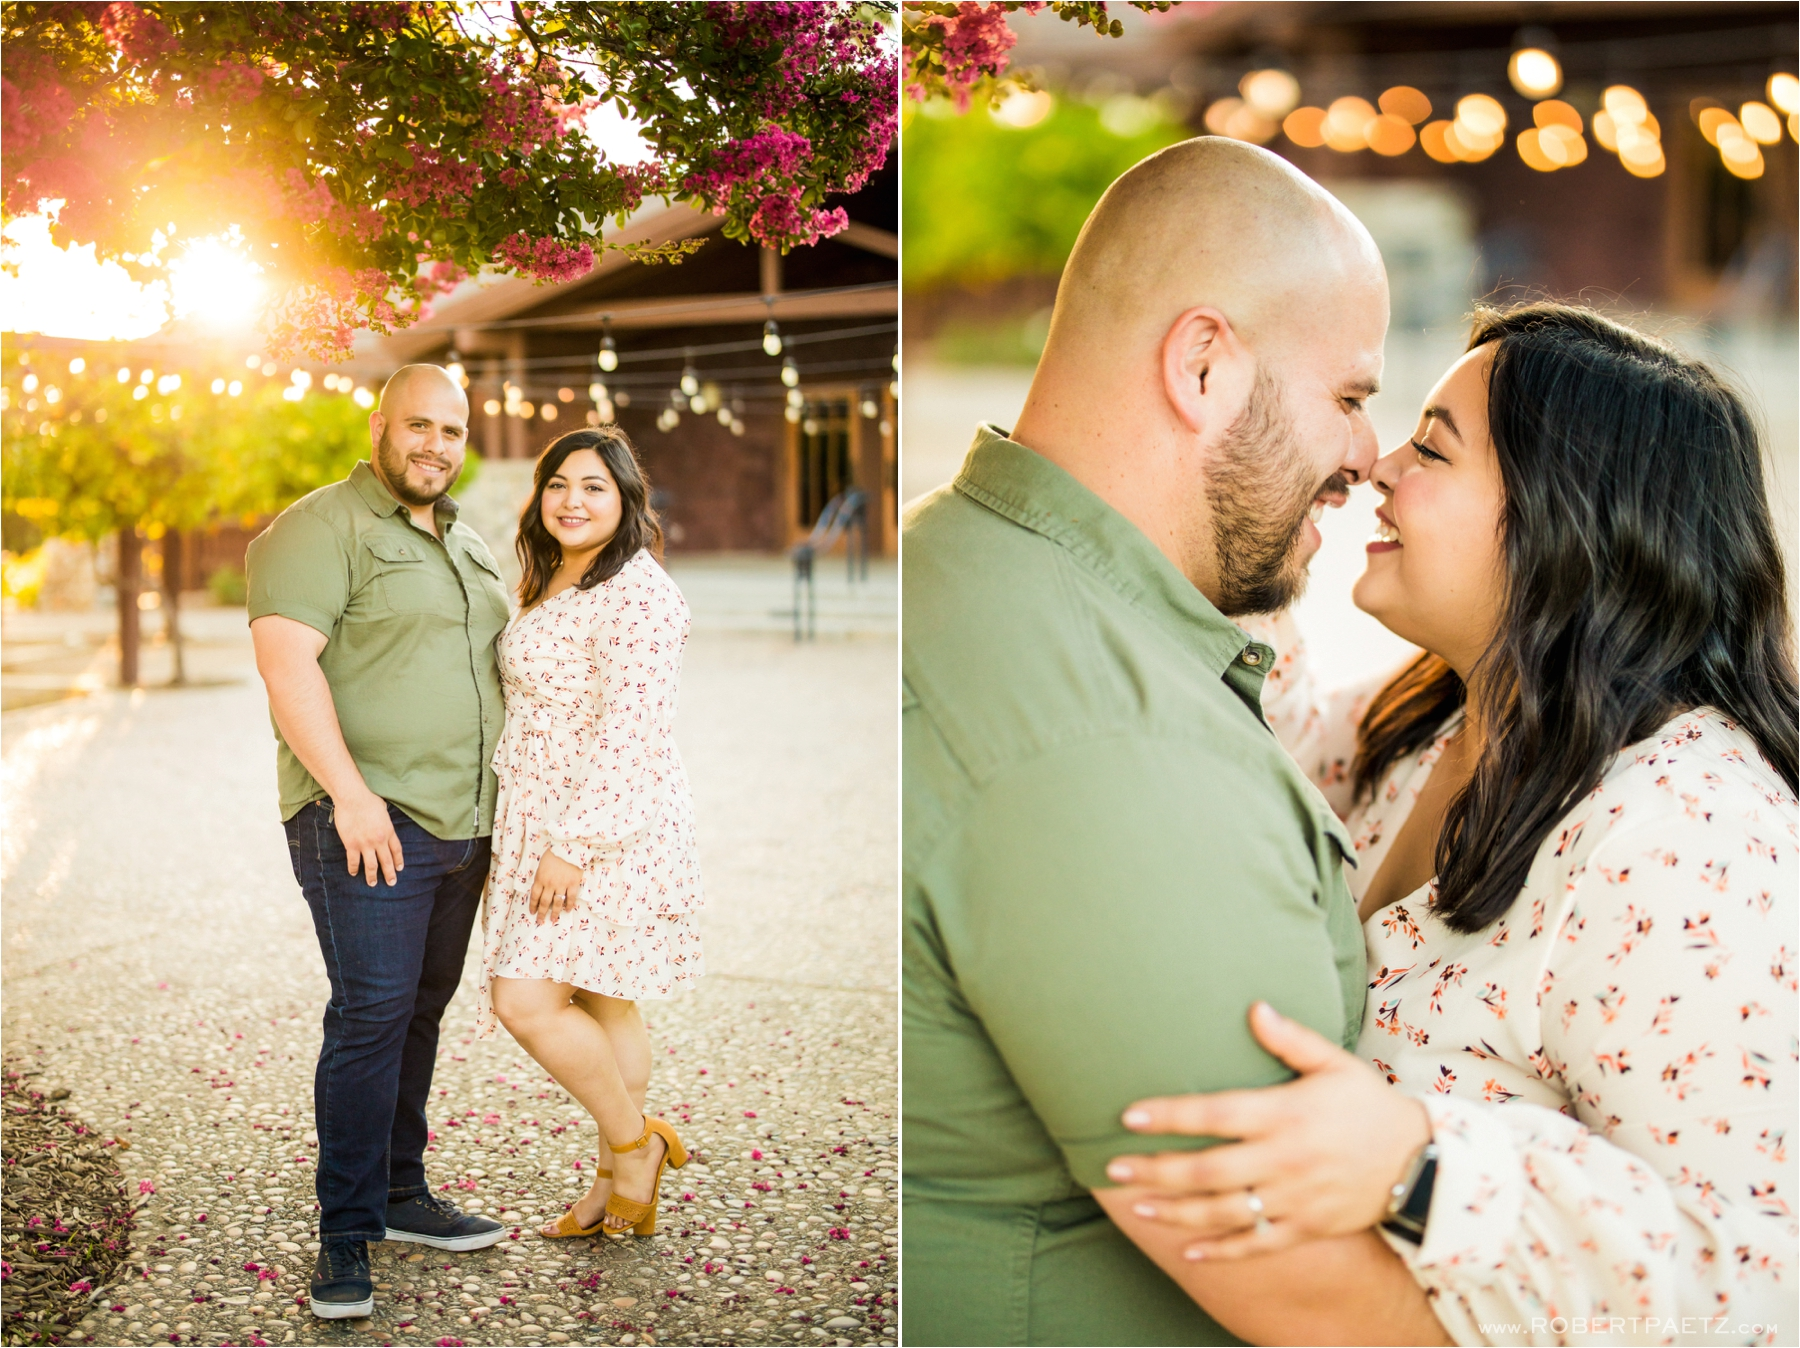 Engagement photography session taking place at the California Citrus State Historic Park in Riverside, California. The session was photographed by the destination wedding photographer, Robert Paetz.